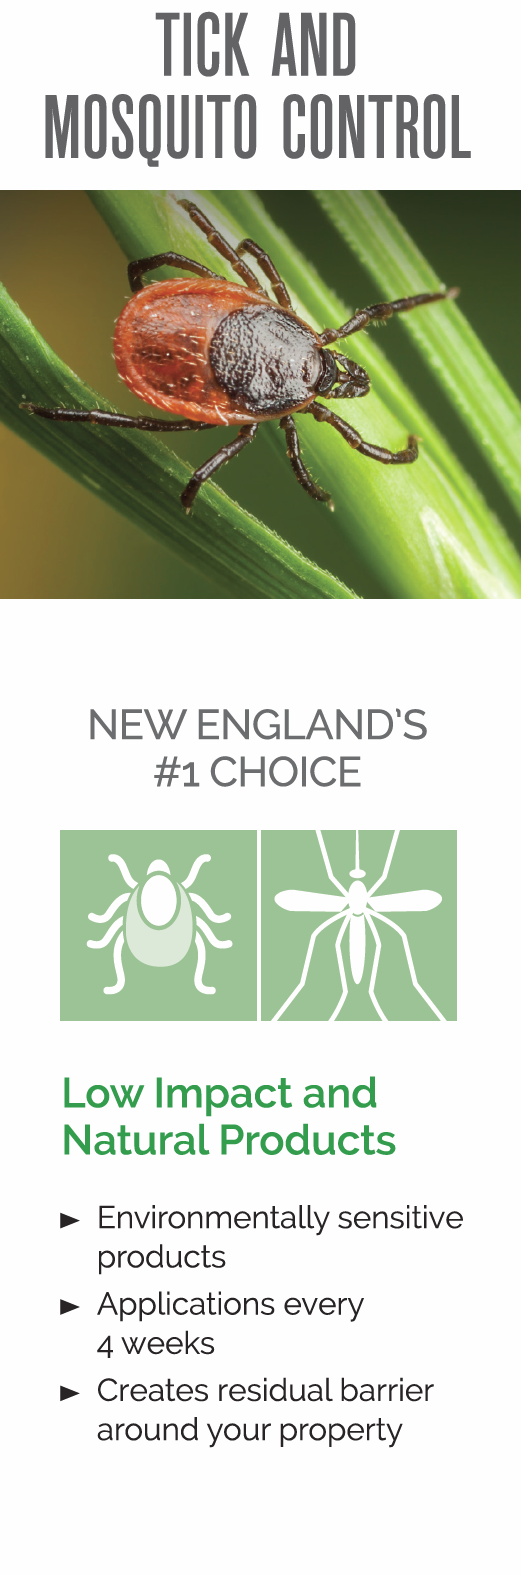 tick and mosquito control in new england